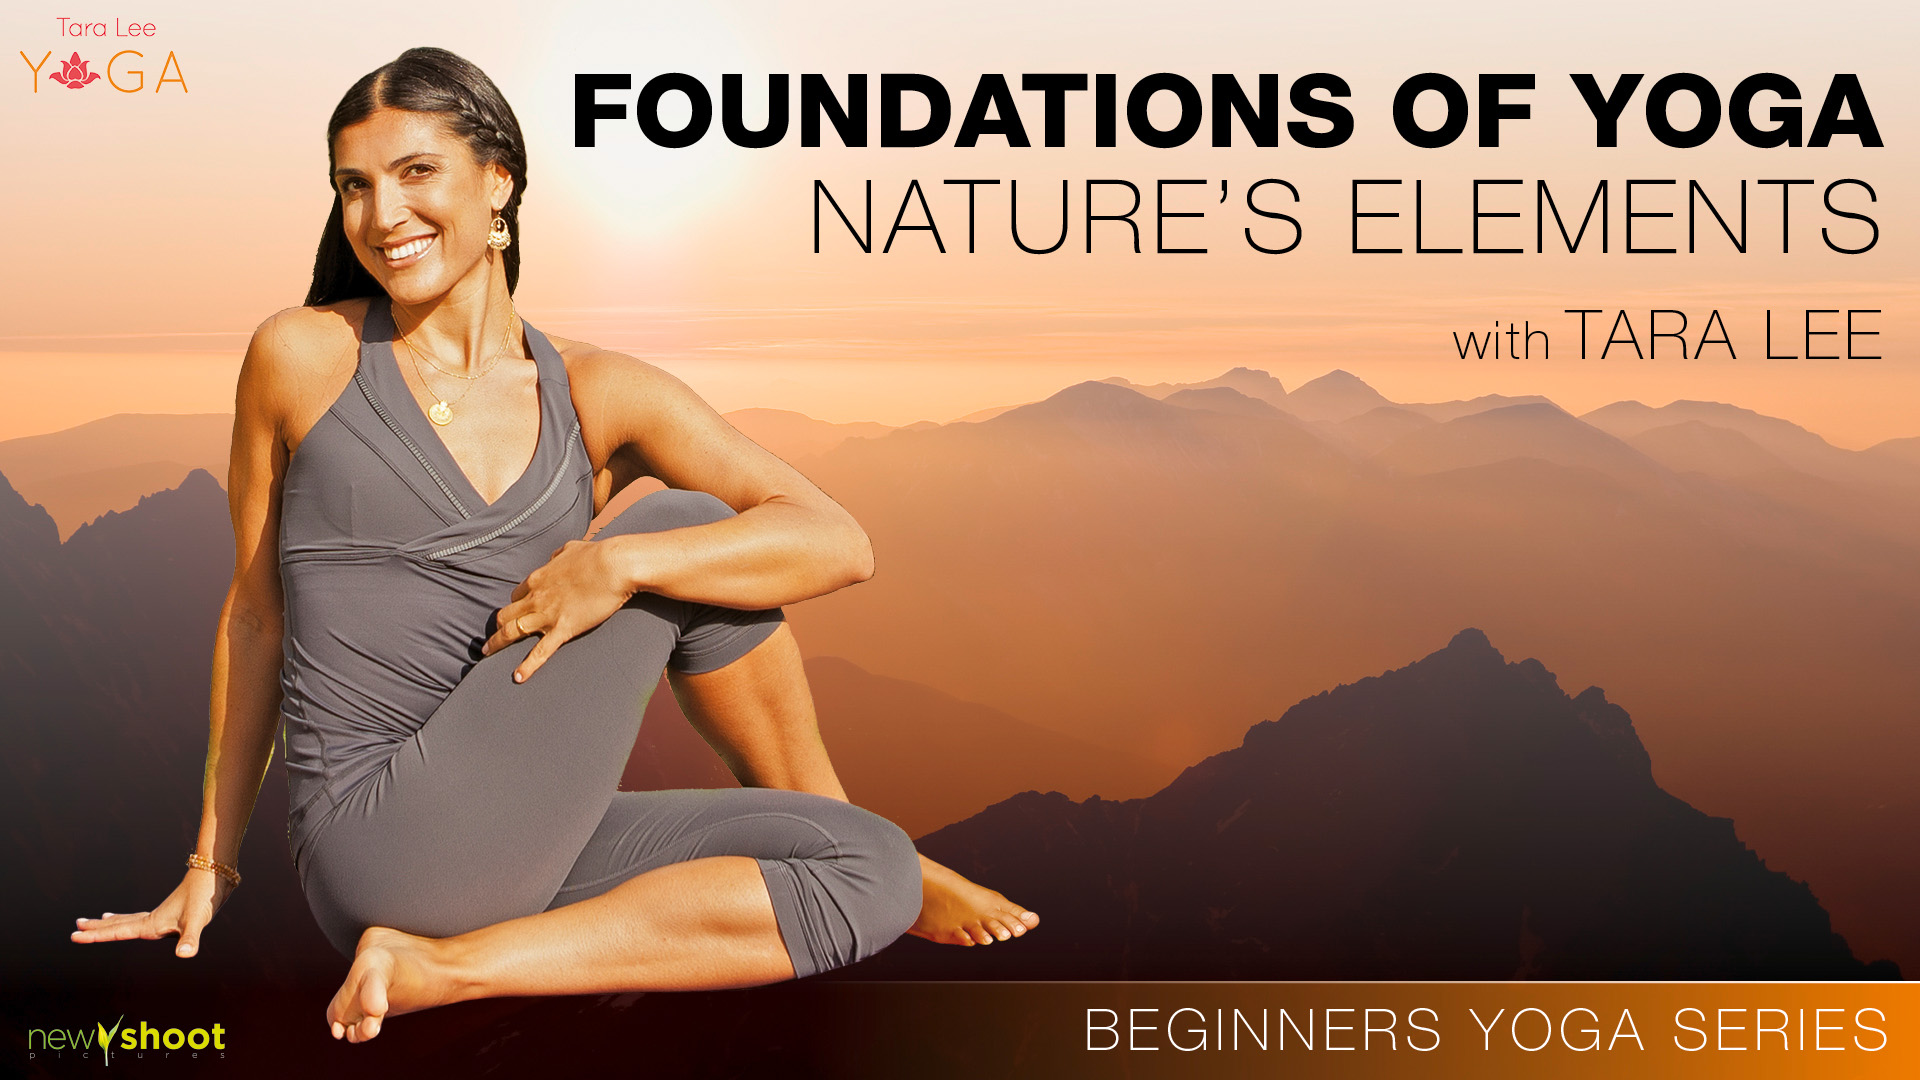 NS17125_TaraLee_FoundationsOfYoga_Nature'sElements_Vimeo_16x9